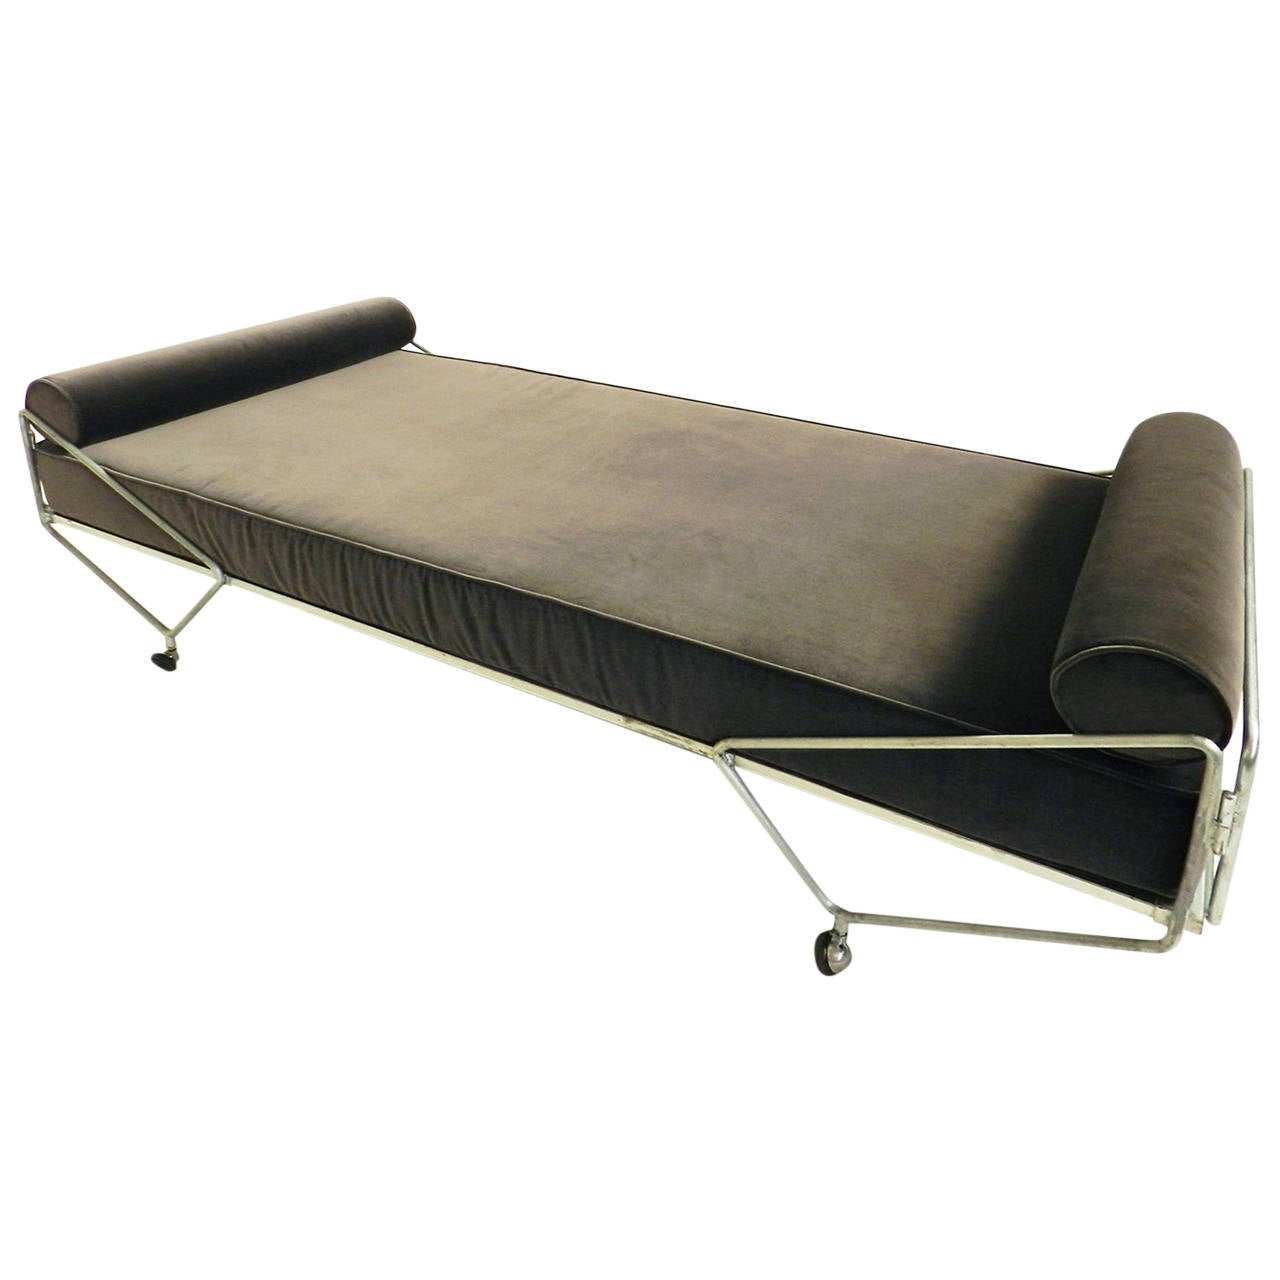 Gio Ponti Daybed from the Apta Series 1